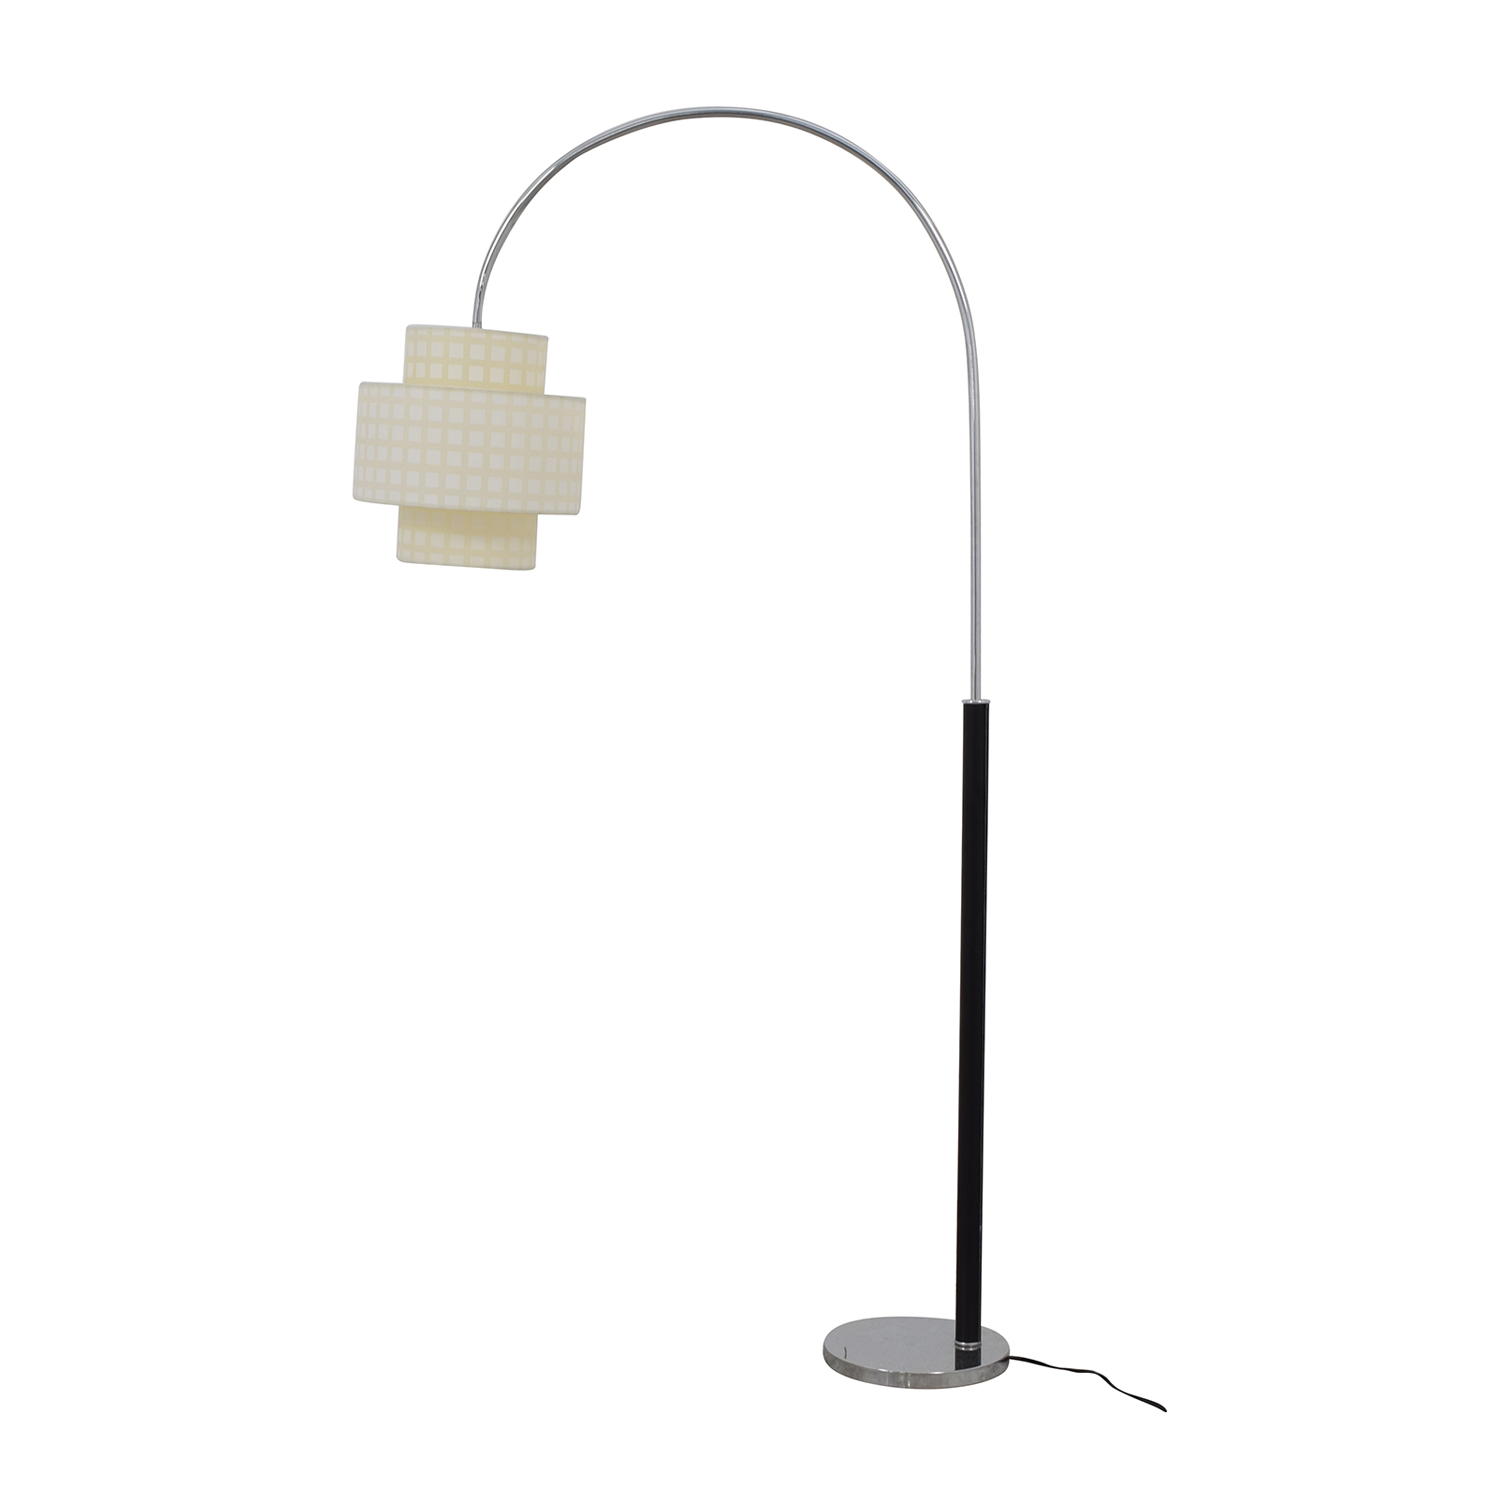 Standing Floor Lamp with Two Section Shade dimensions